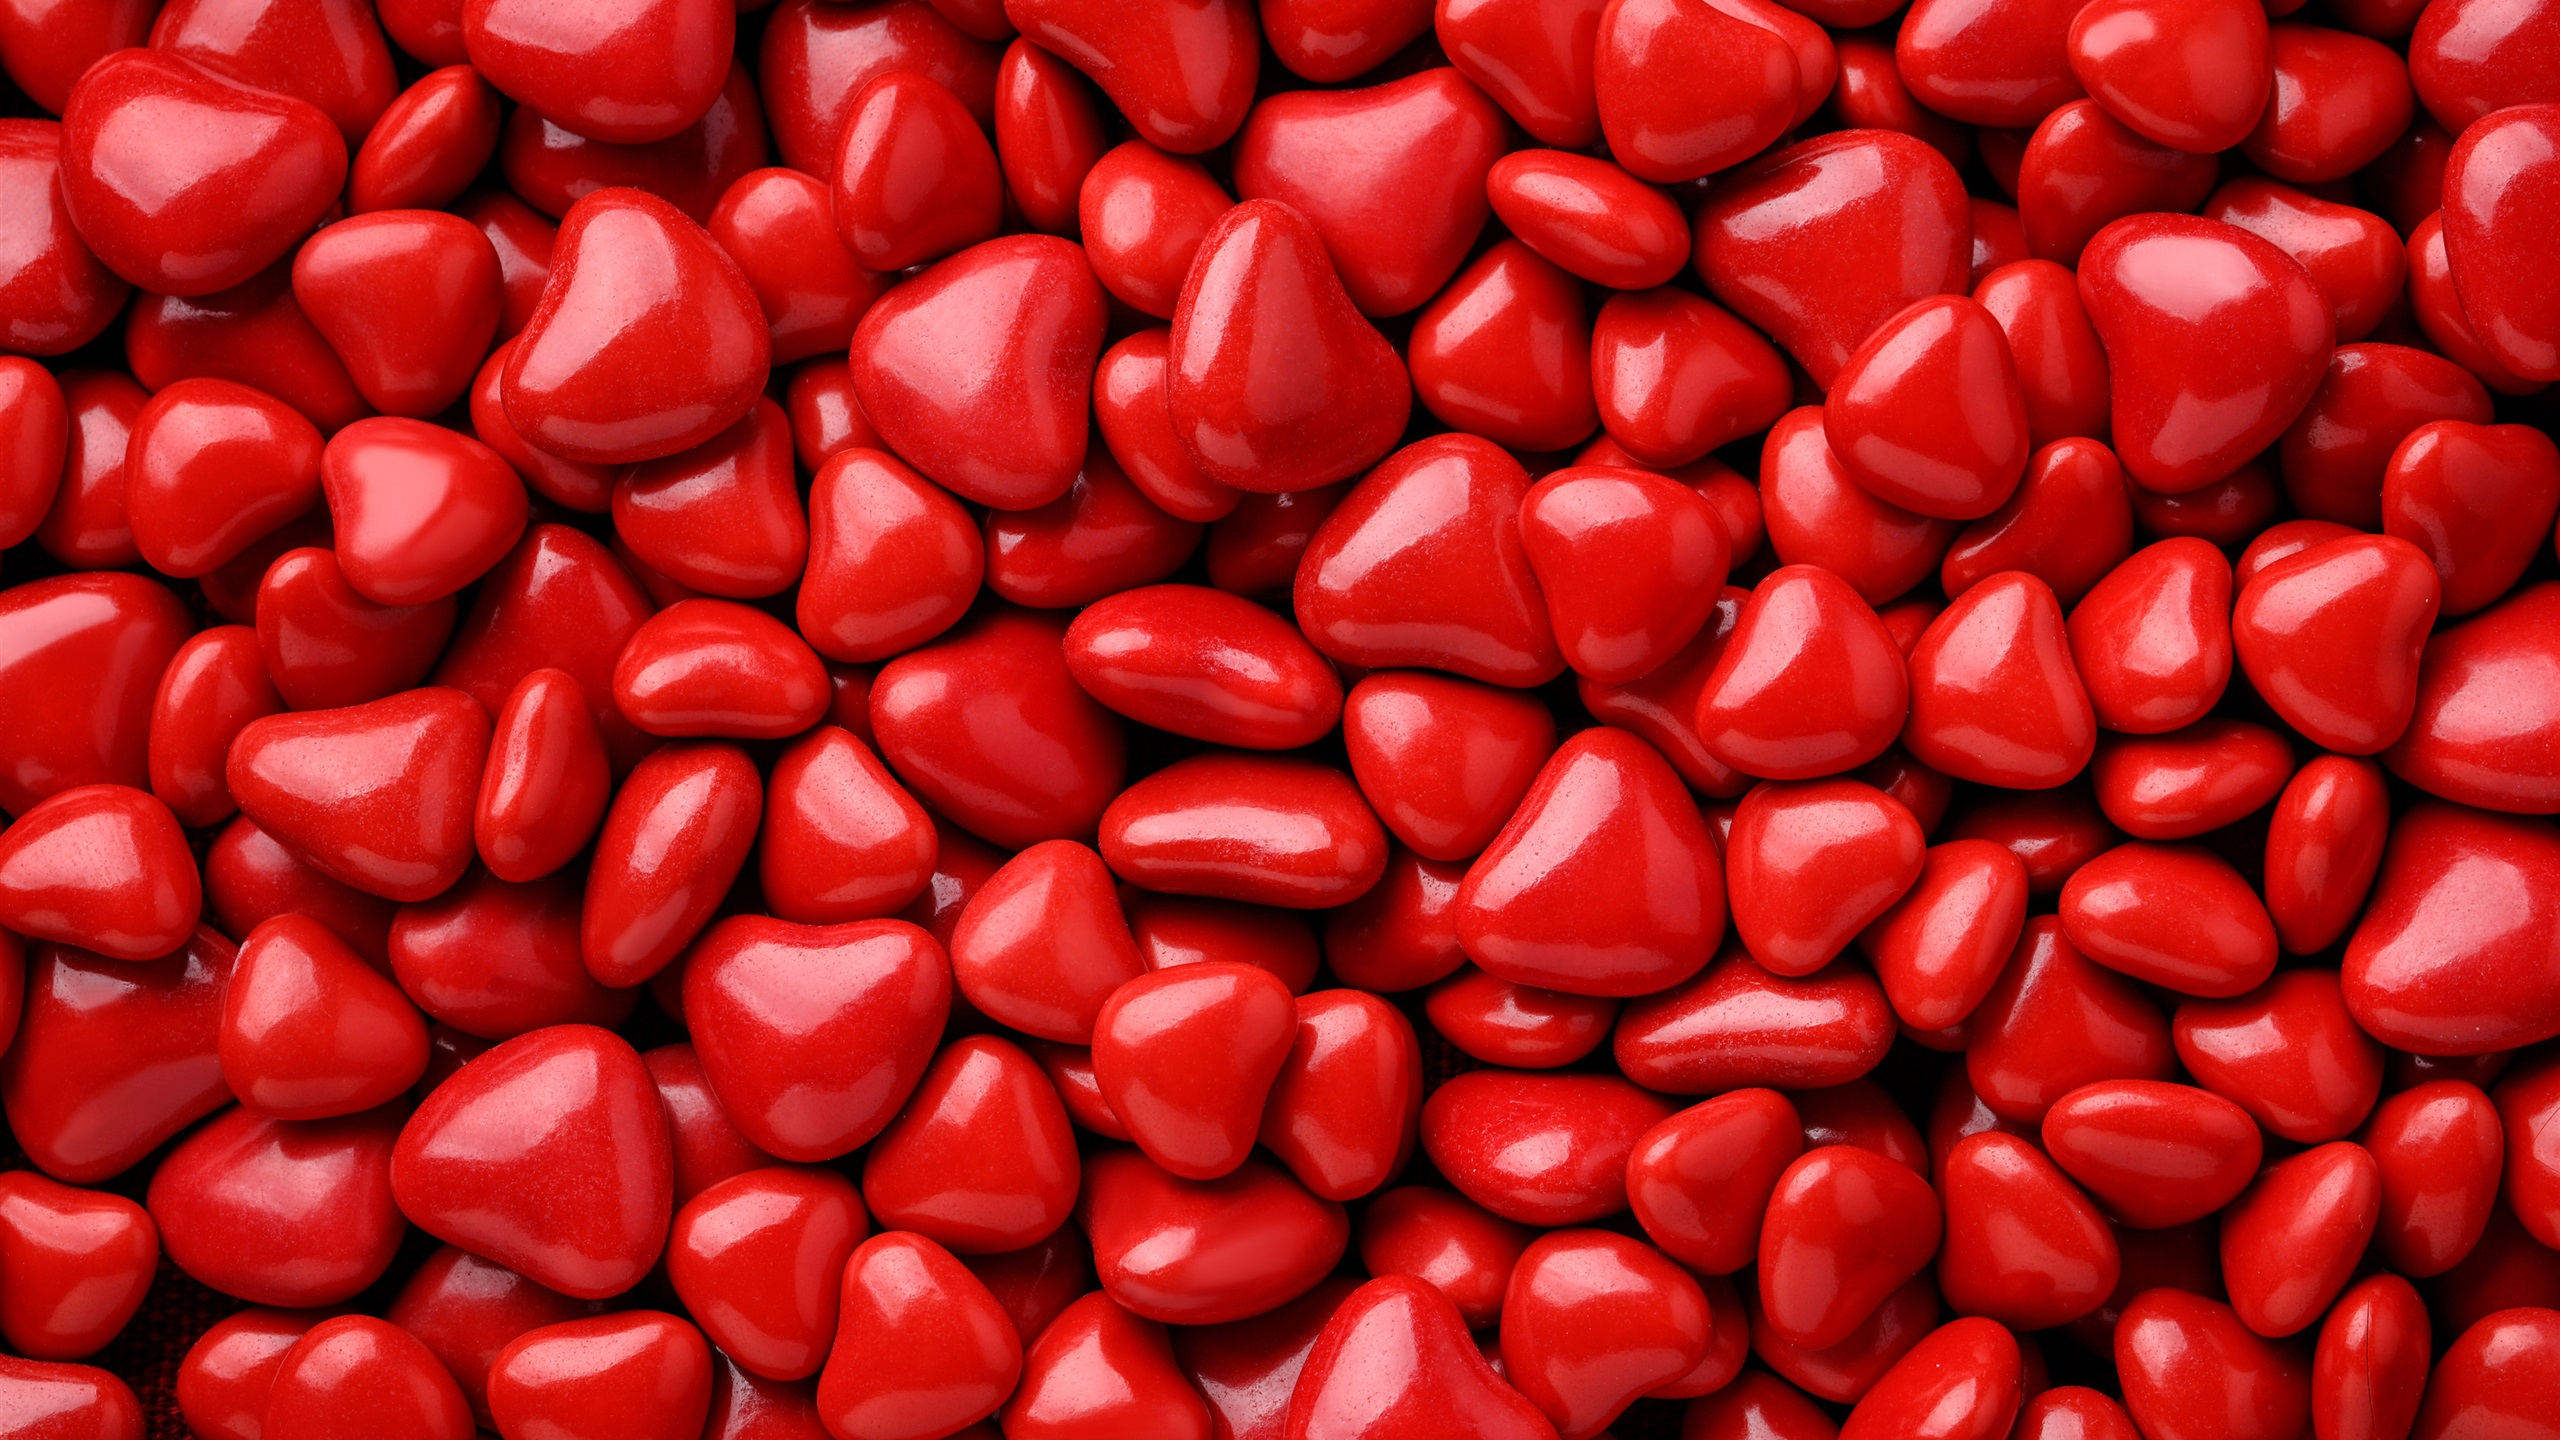 Many Red Love Heart Shaped Candy 1080x1920 Iphone 8 7 6 6s